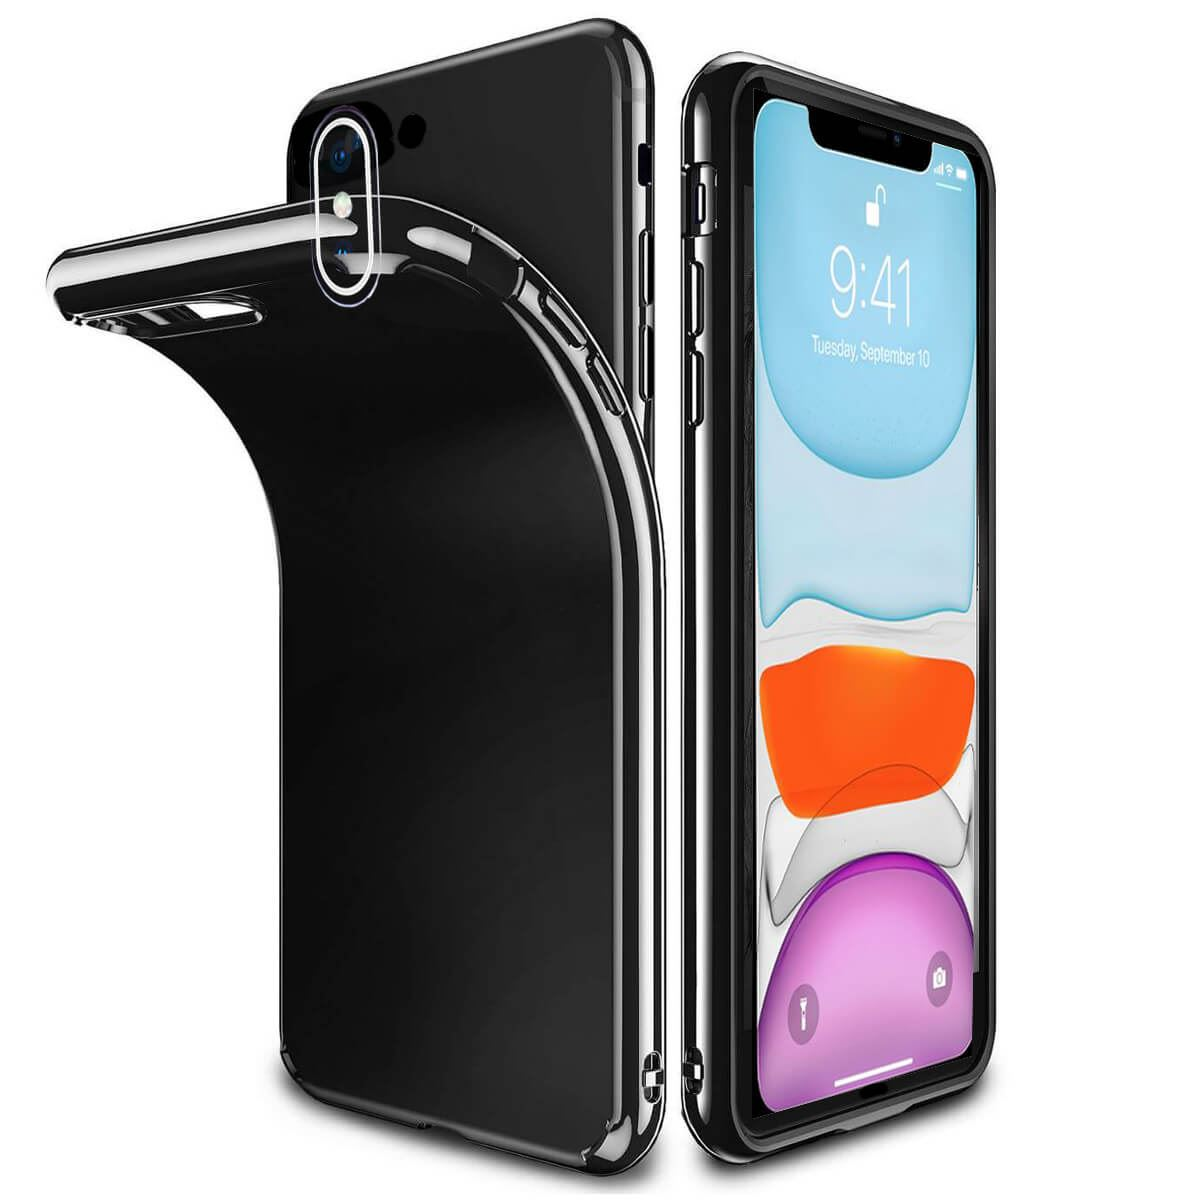 Ultra-Thin-Case-Apple-iPhone-10-X-8-7-6s-5s-Shockproof-Jelly-TPU-Jet-Black-Cover thumbnail 6